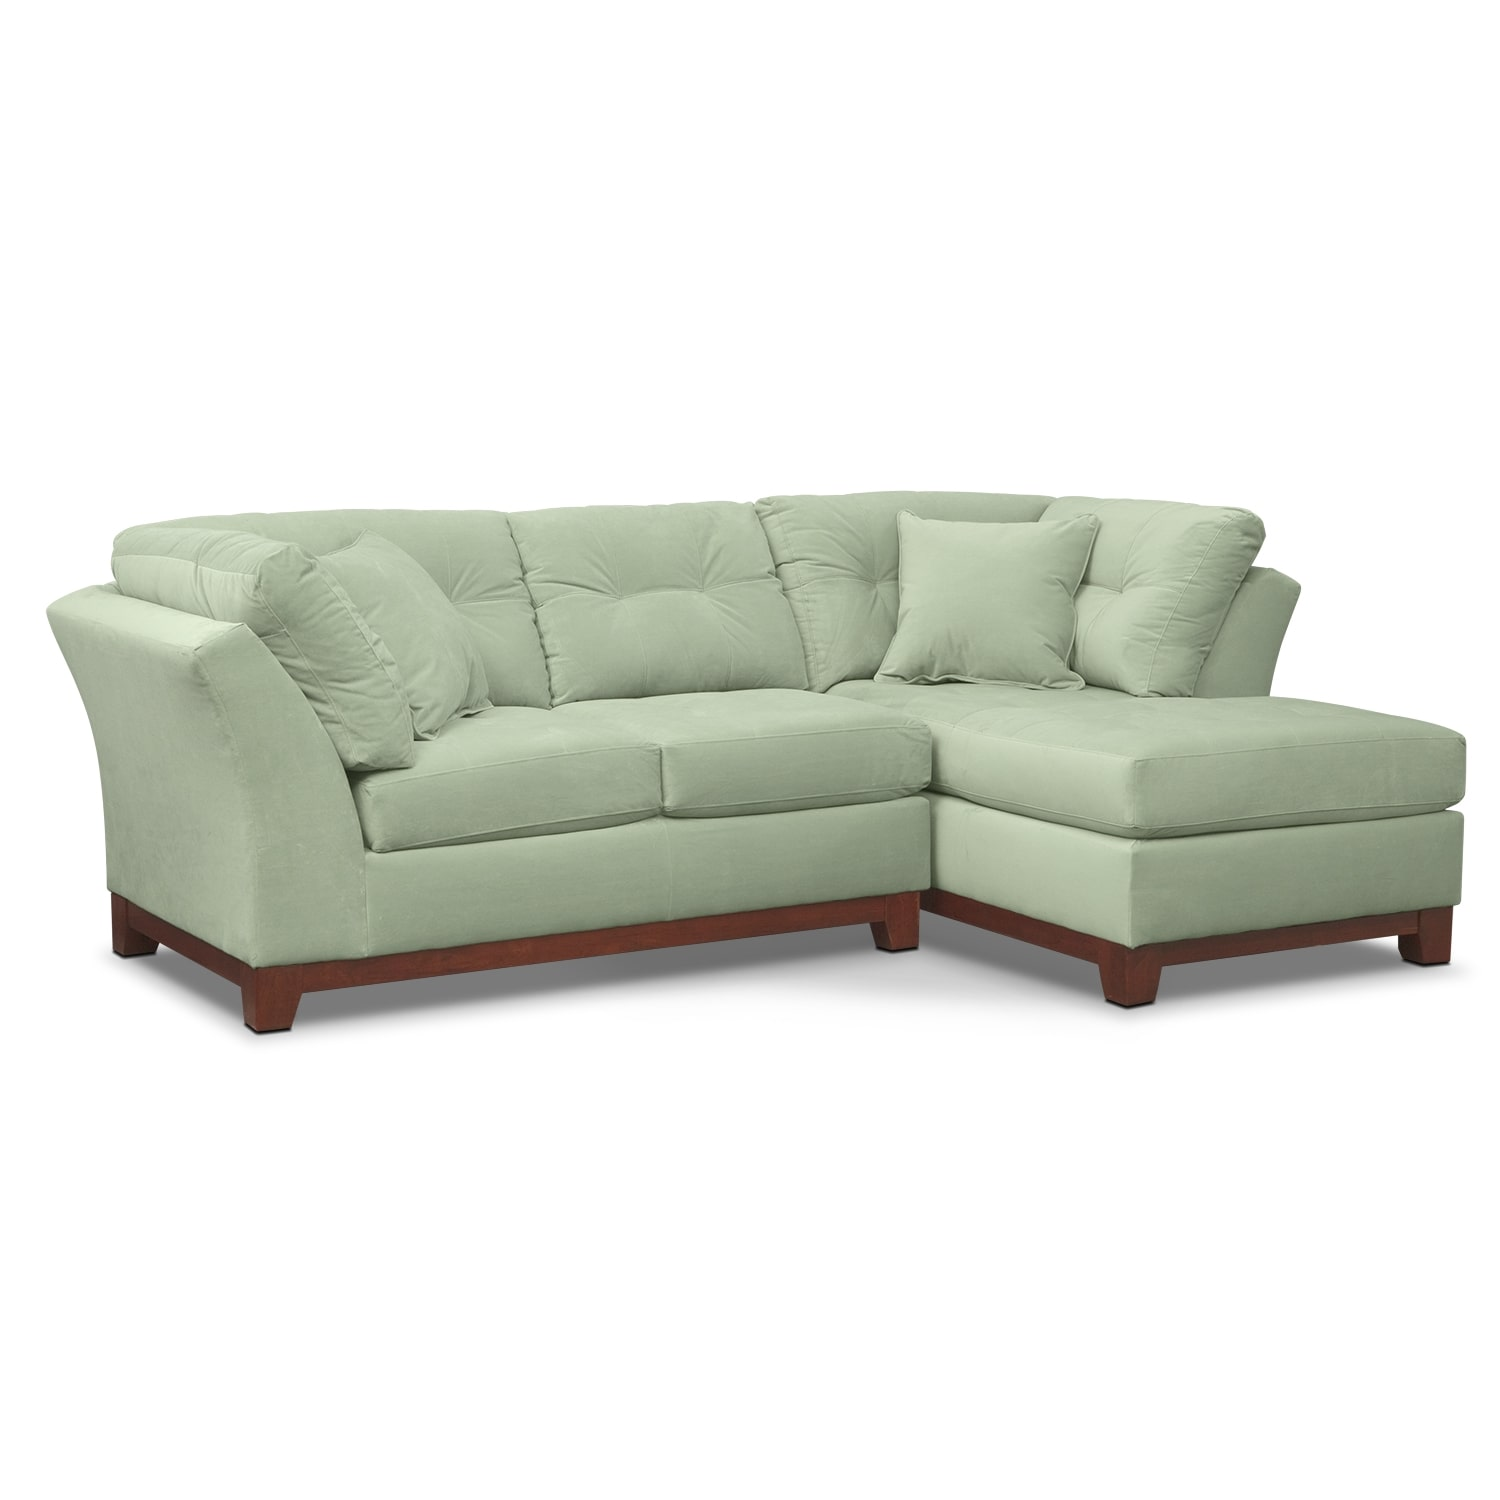 Living Room Furniture - Solace 2-Piece Right-Facing Chaise Sectional - Spa